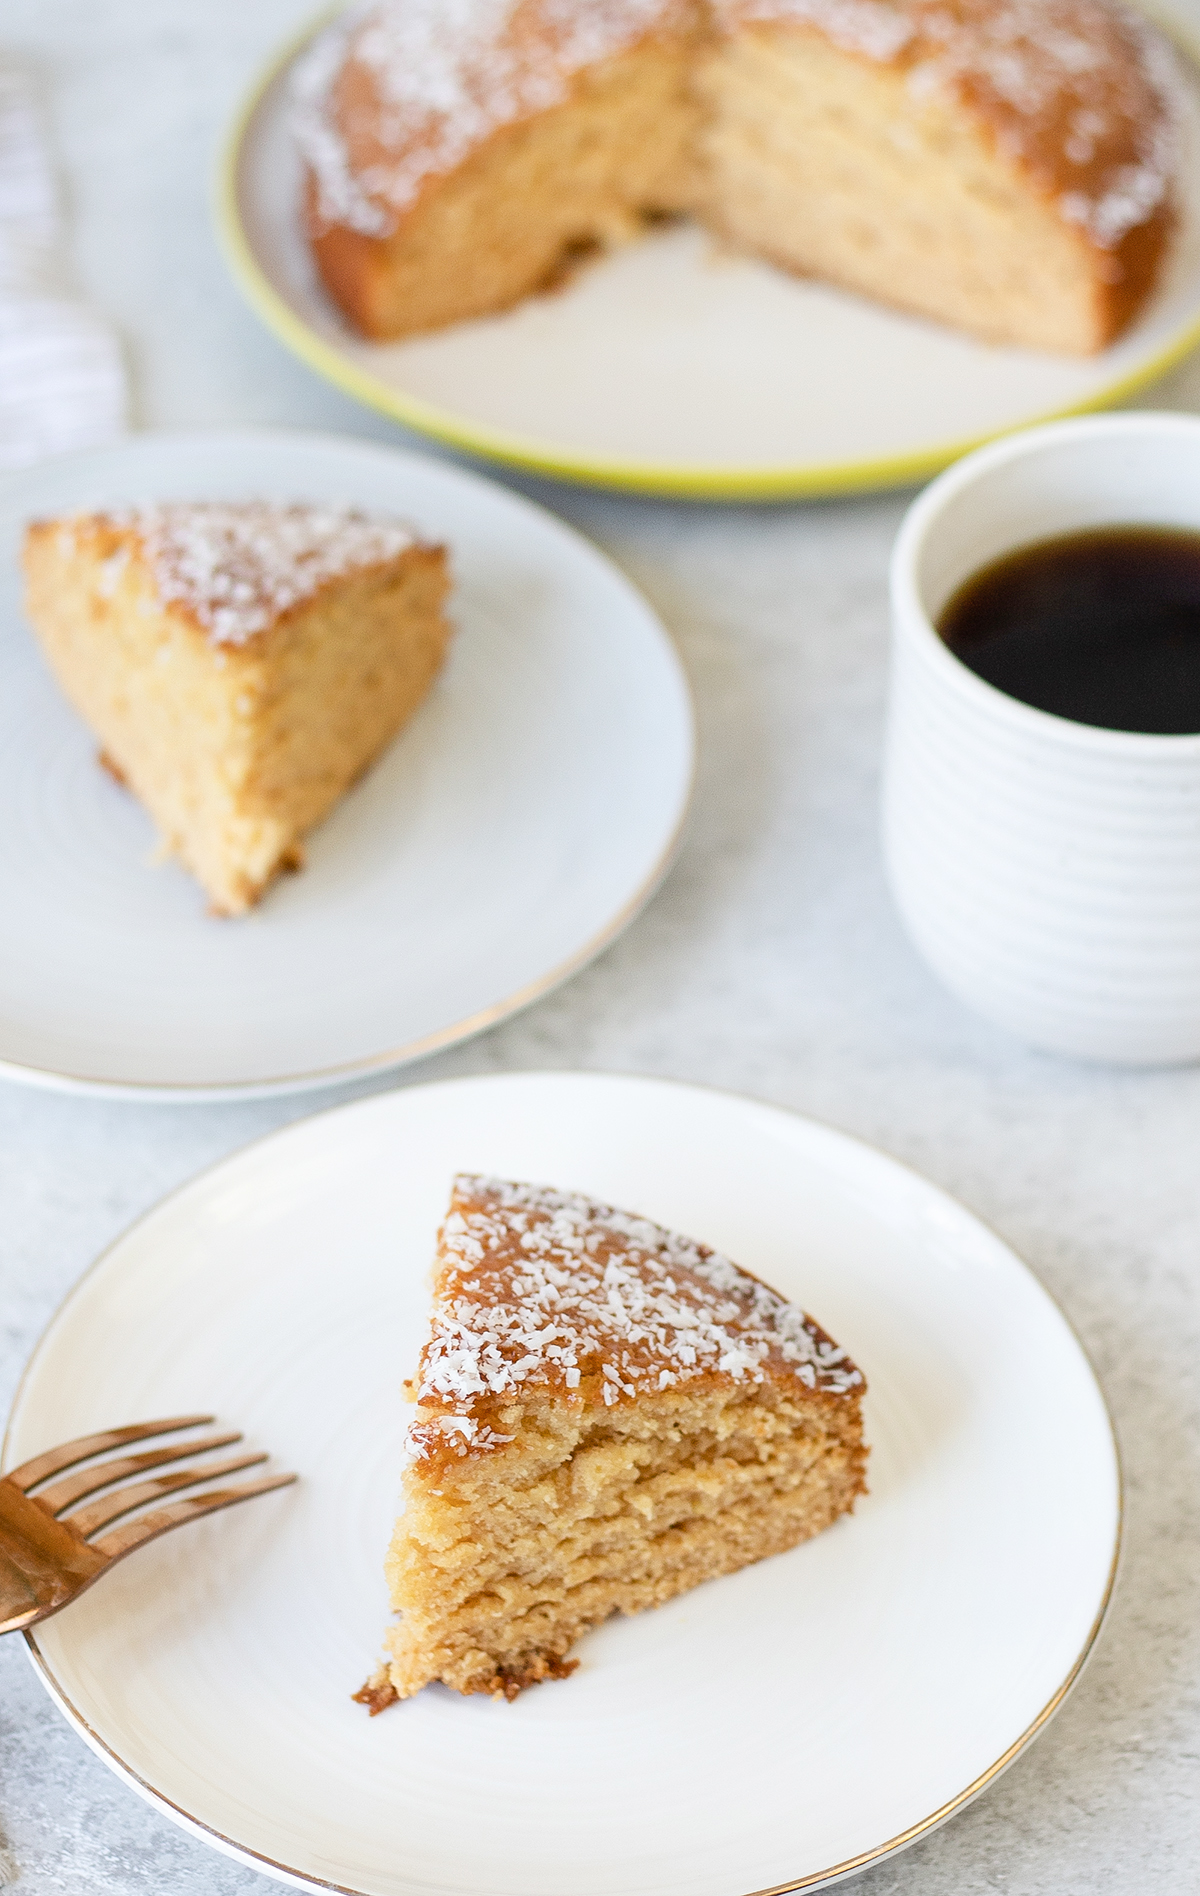 Golden Syrup Cake is a moist sponge cake made with golden syrup